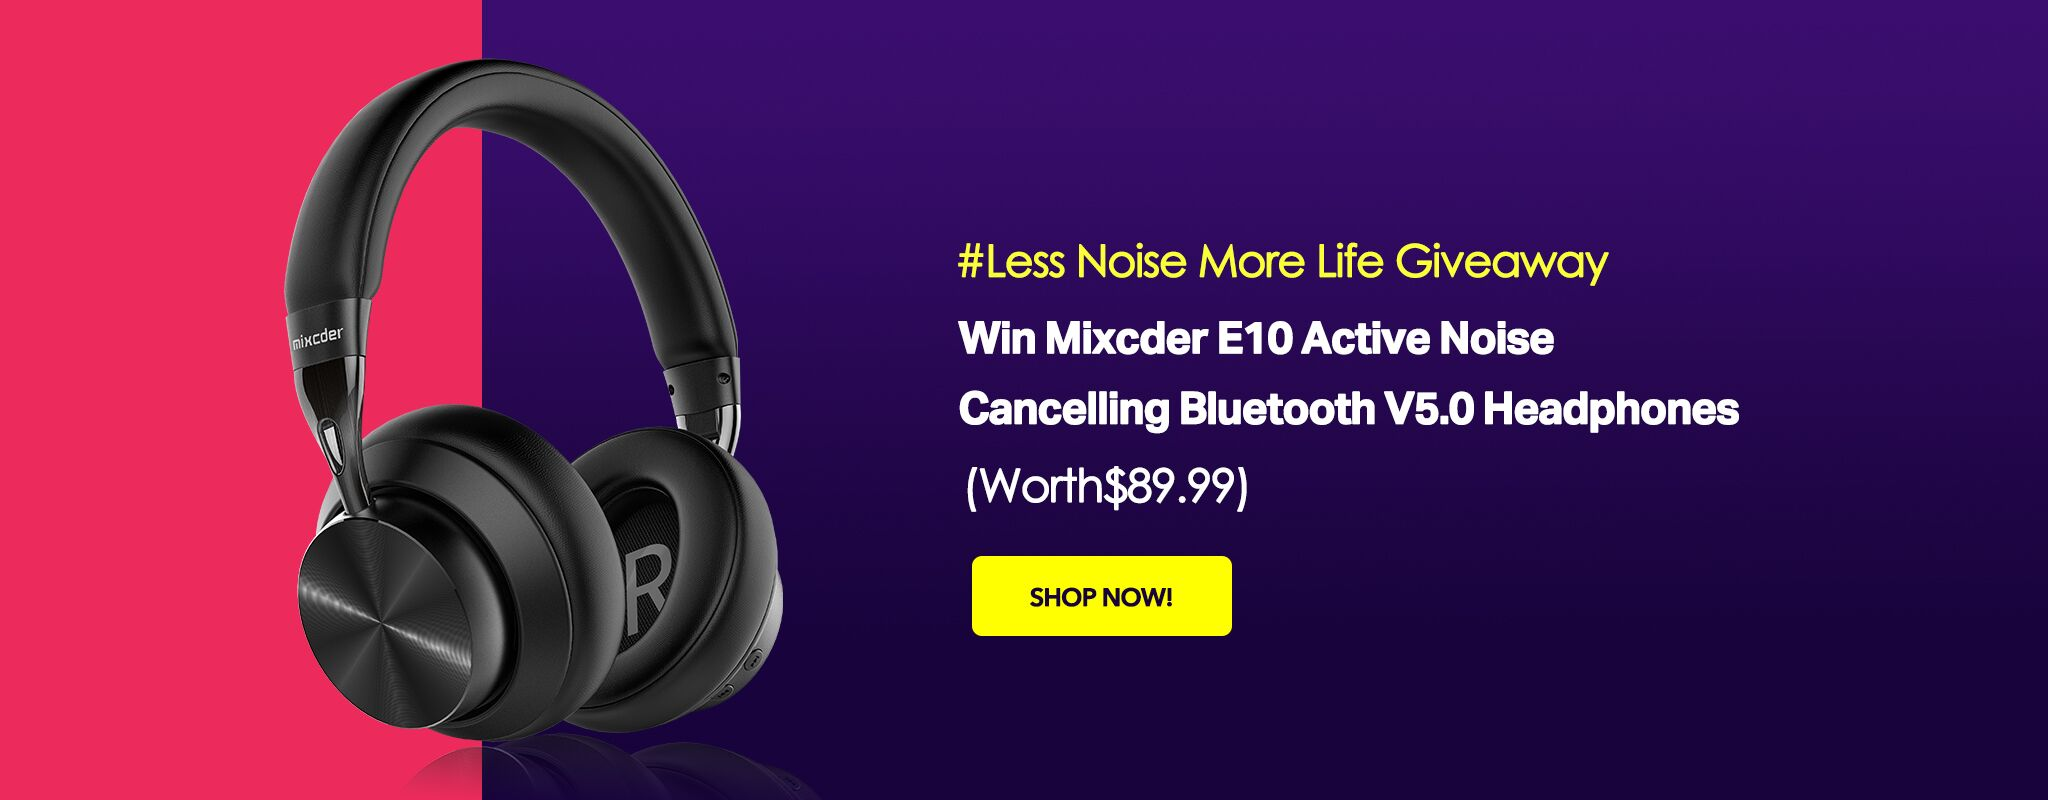 Win 1 of 5 Mixcder E10 Active Noise Cancelling Bluetooth V5.0 Headphones (Worth $89.99) Giveaway Image